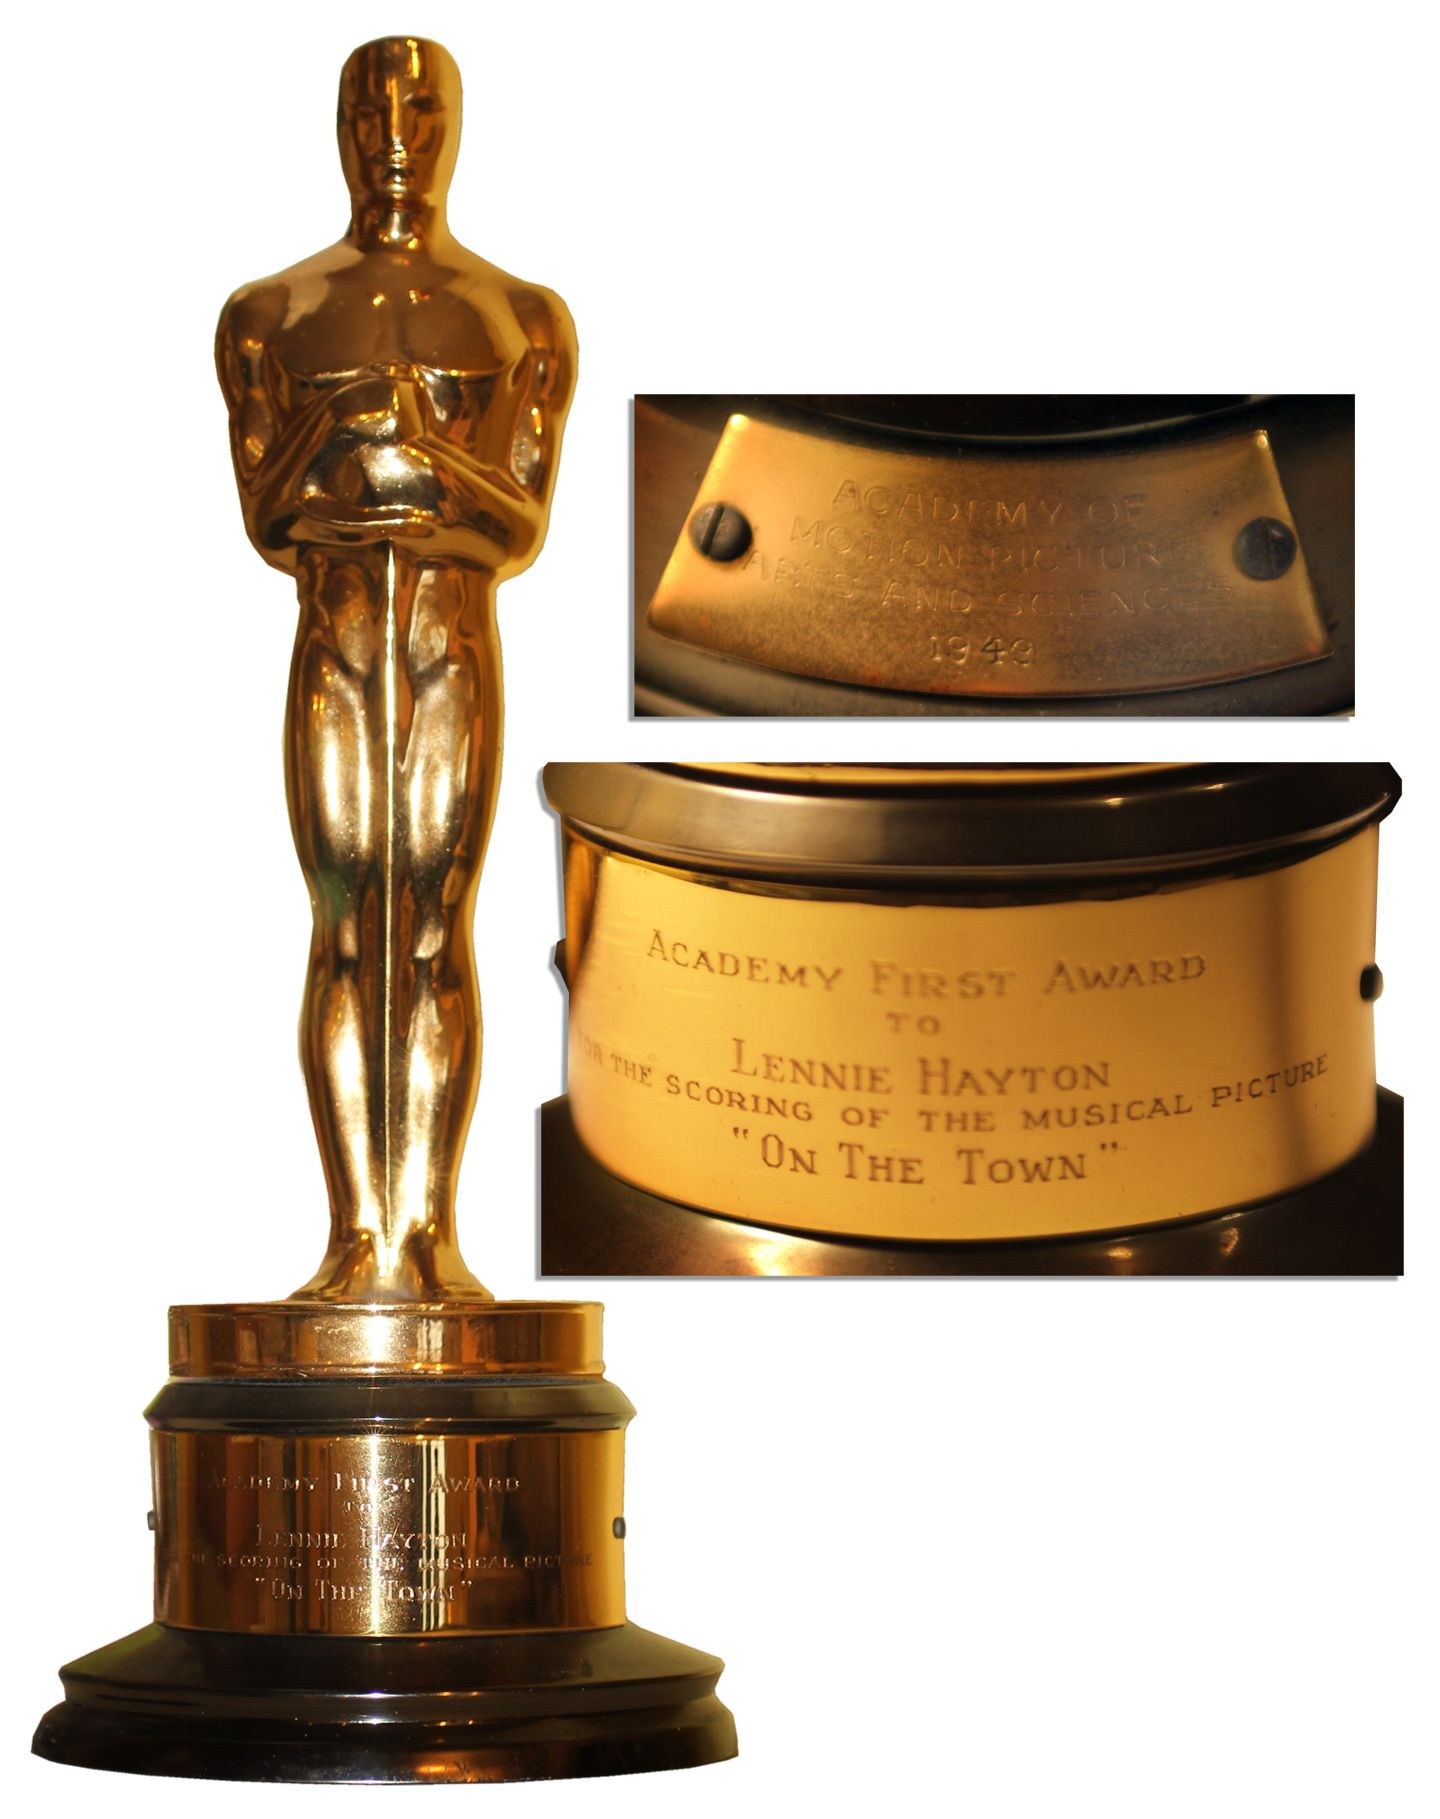 lot detail on the town oscar statue for best scoring of a